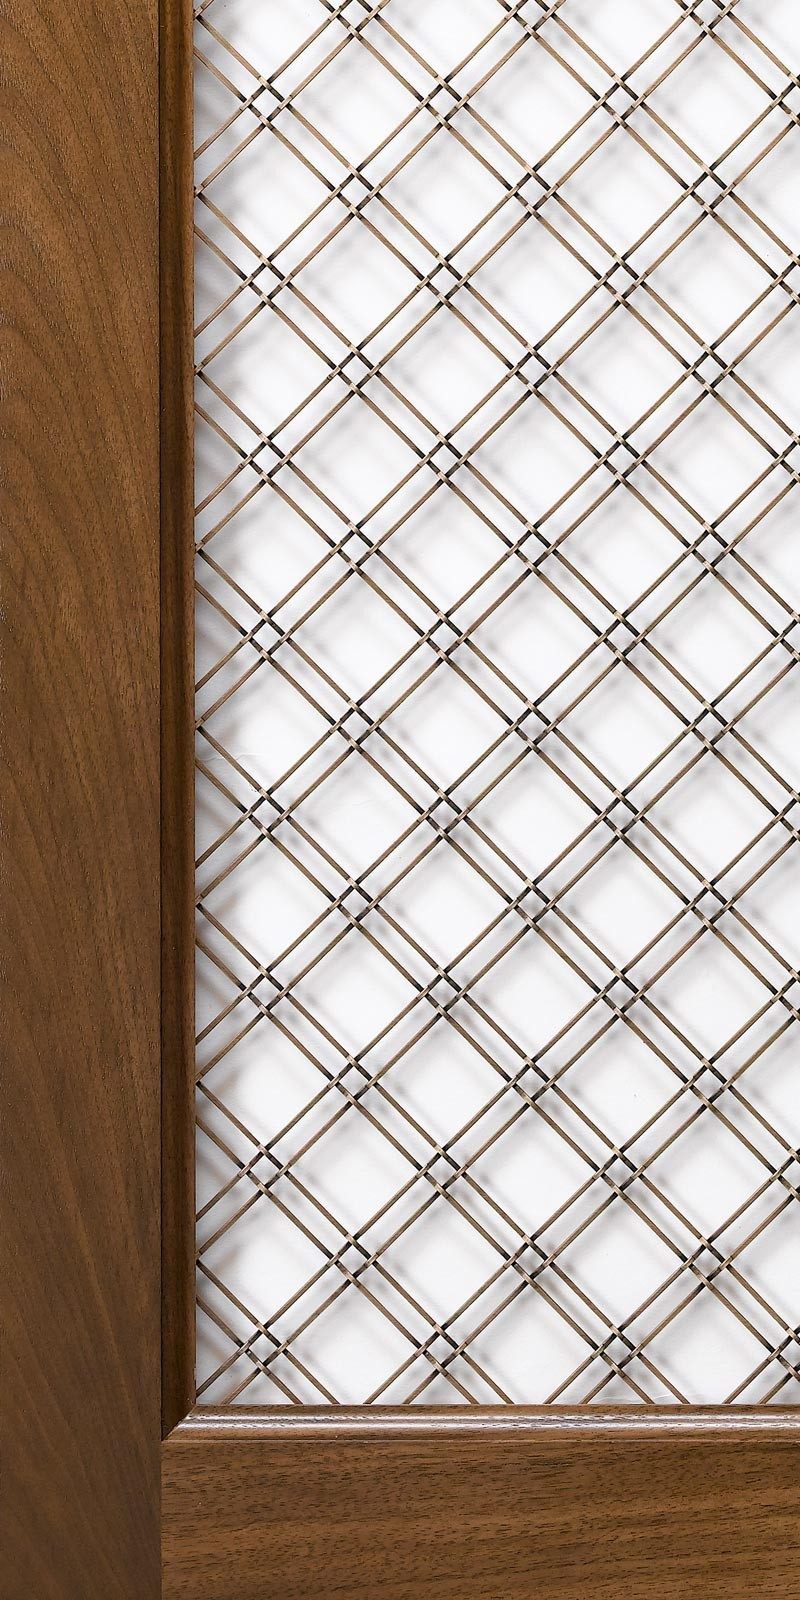 Brass Wire Grille : Wire grille insert for mullion cabinet doors